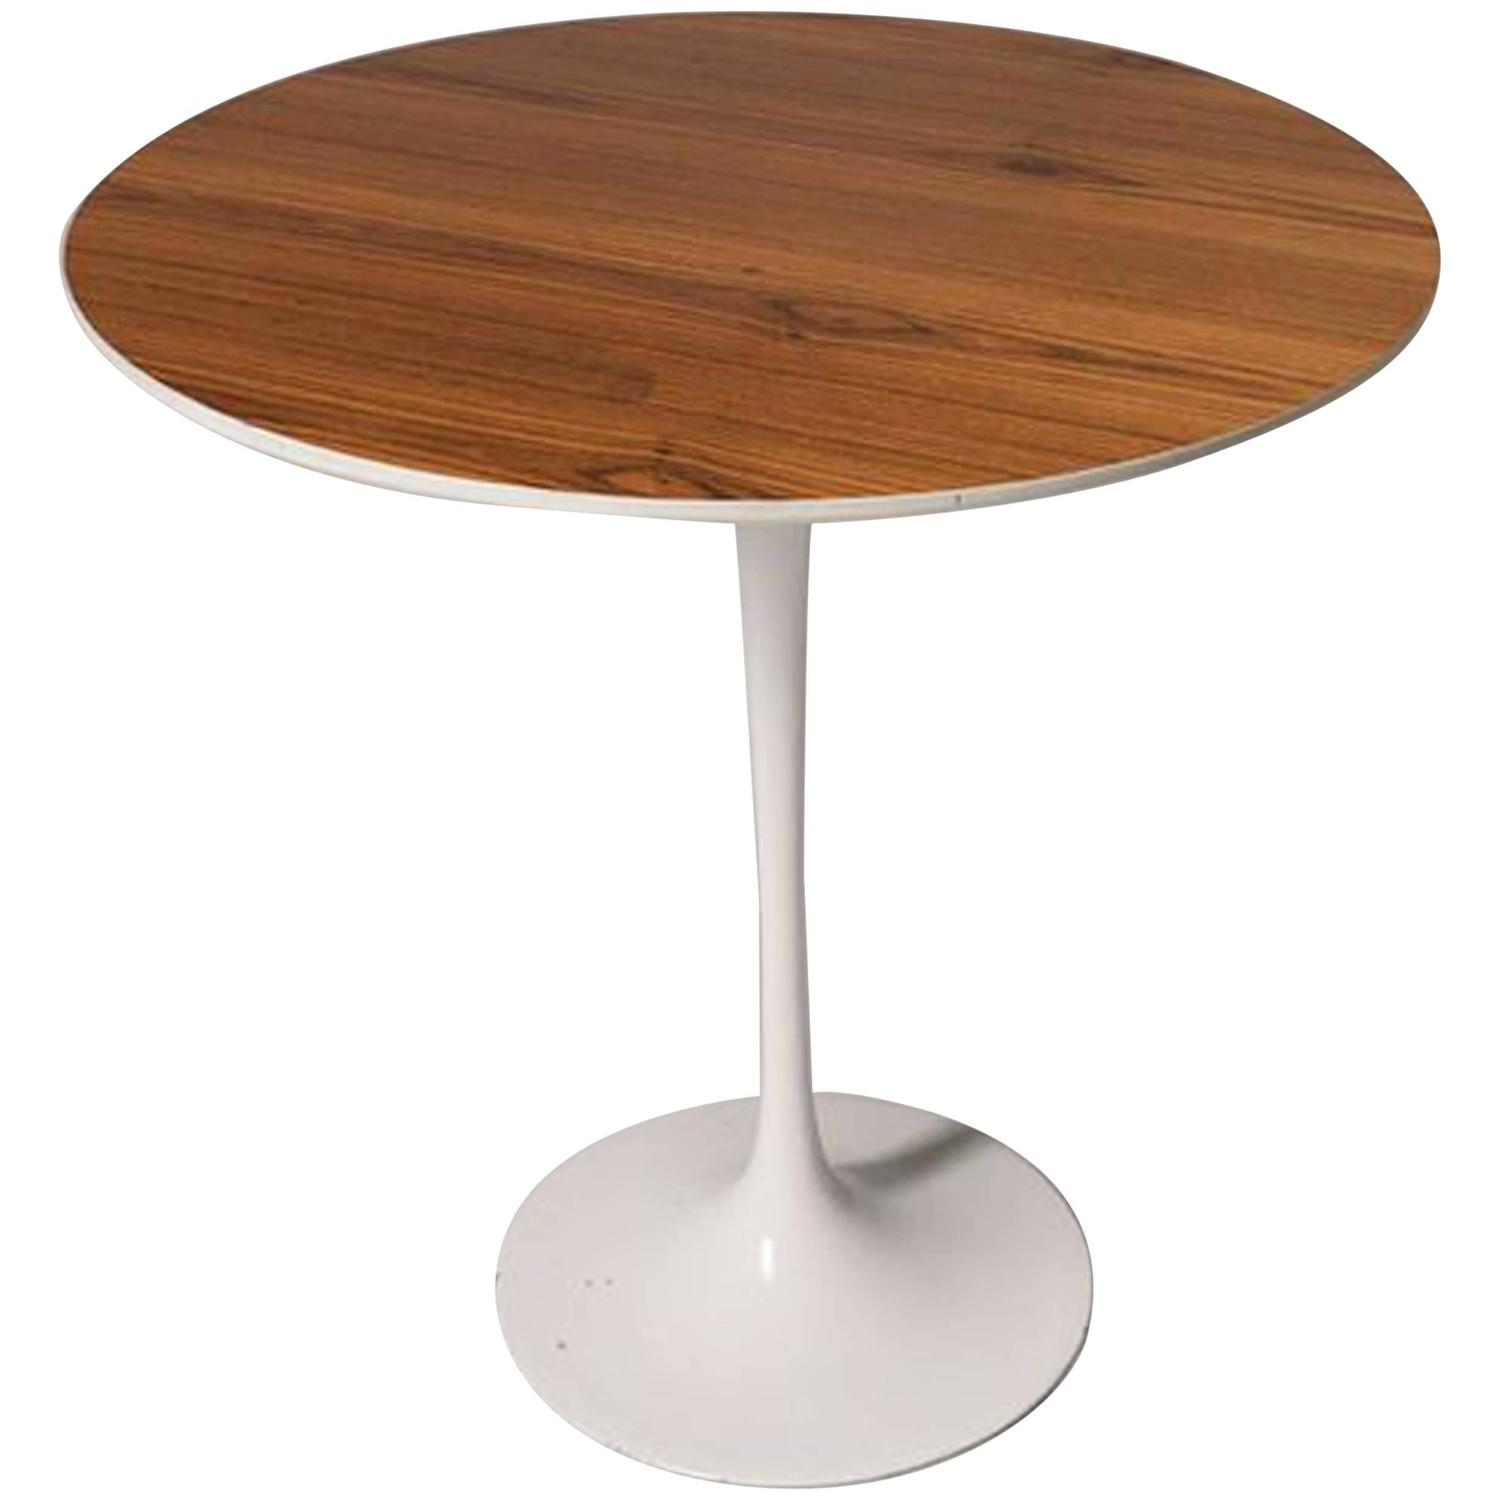 Mid century modern tulip side table by eero saarinen at Modern side table